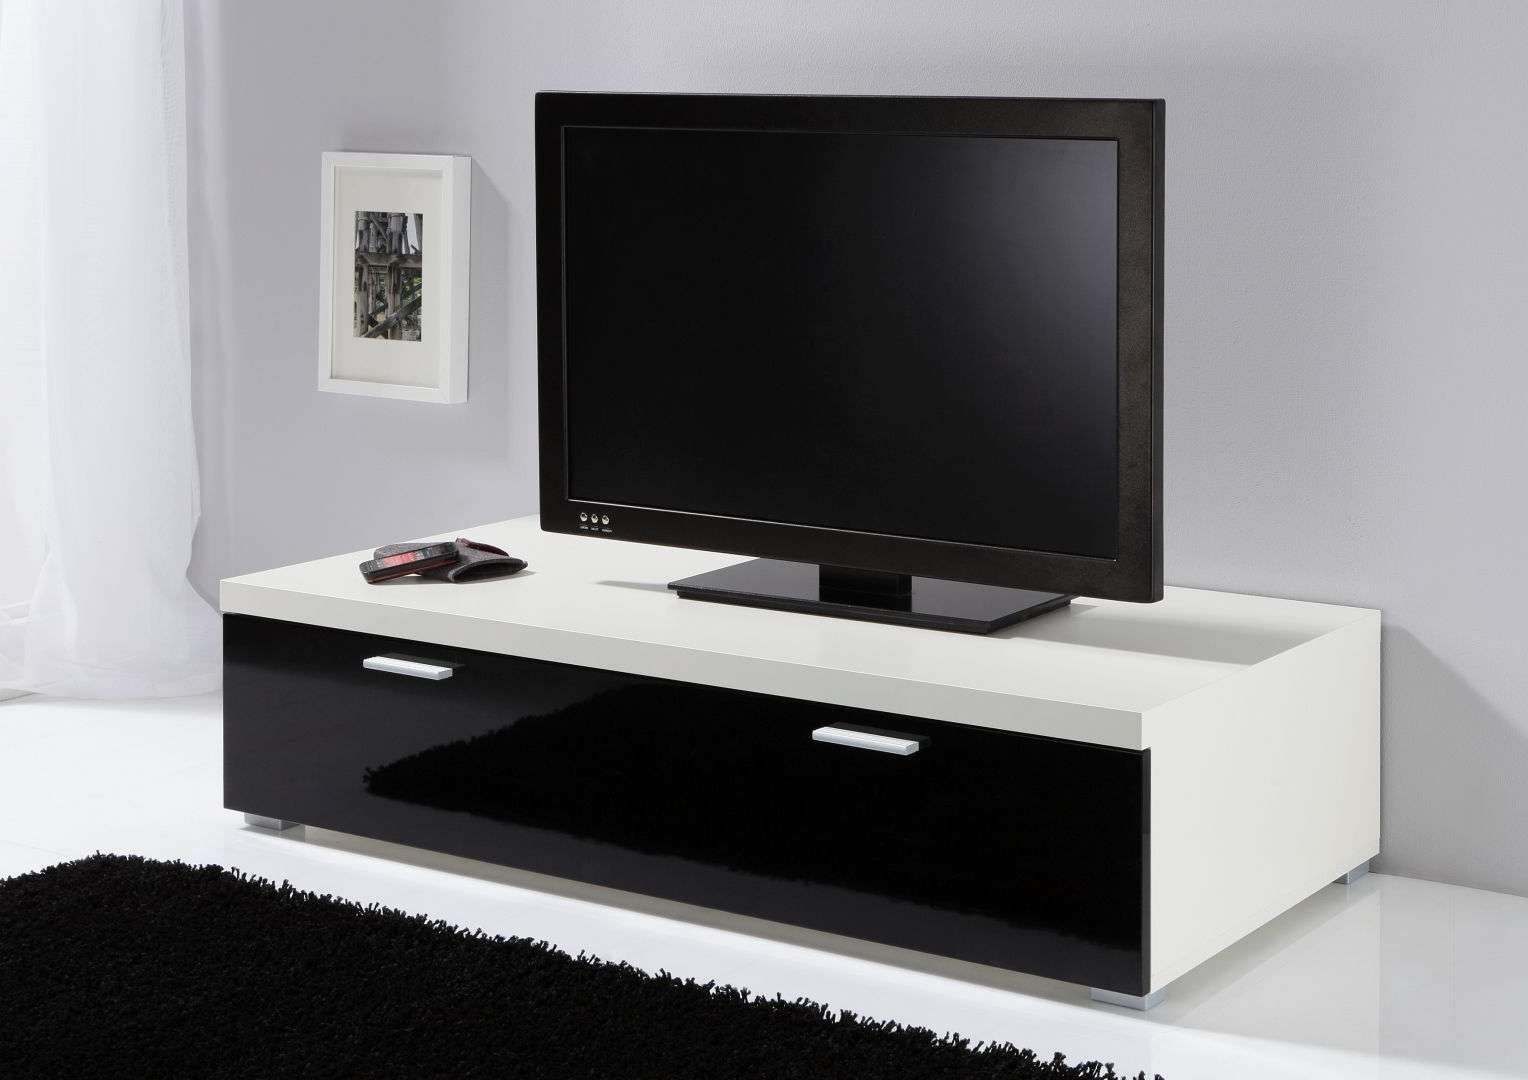 Modanuvo Low Tv Unit, Tv Cabinet, Tv Stand Off White & Black High Within White Tv Cabinets (View 9 of 20)